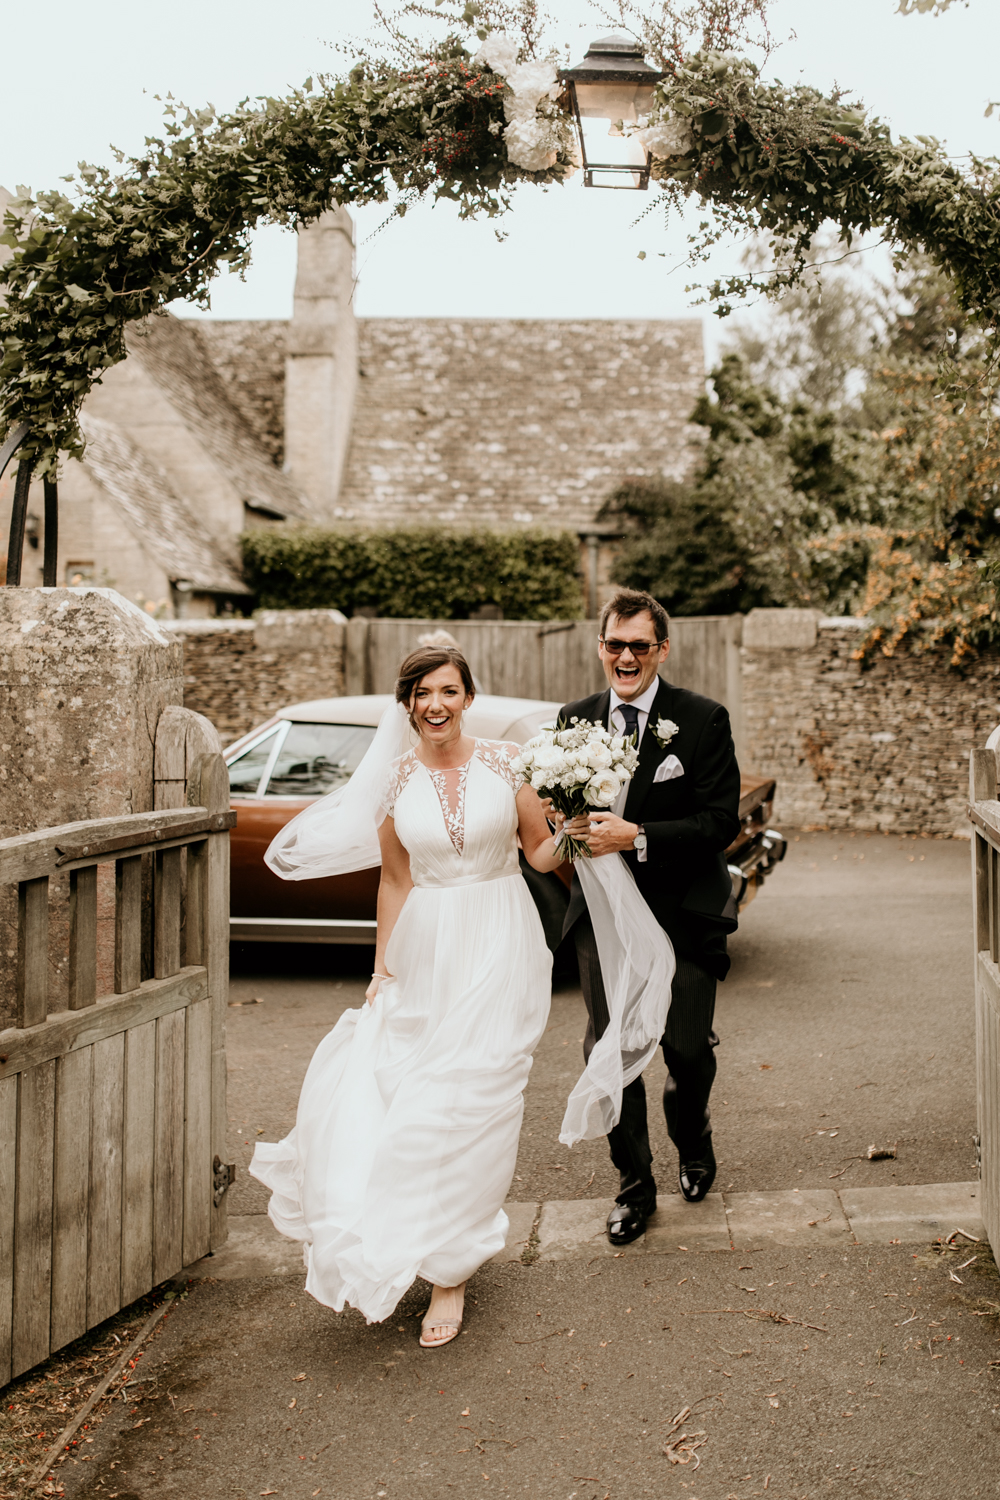 bride and dad arrive at church for her wedding ceremony